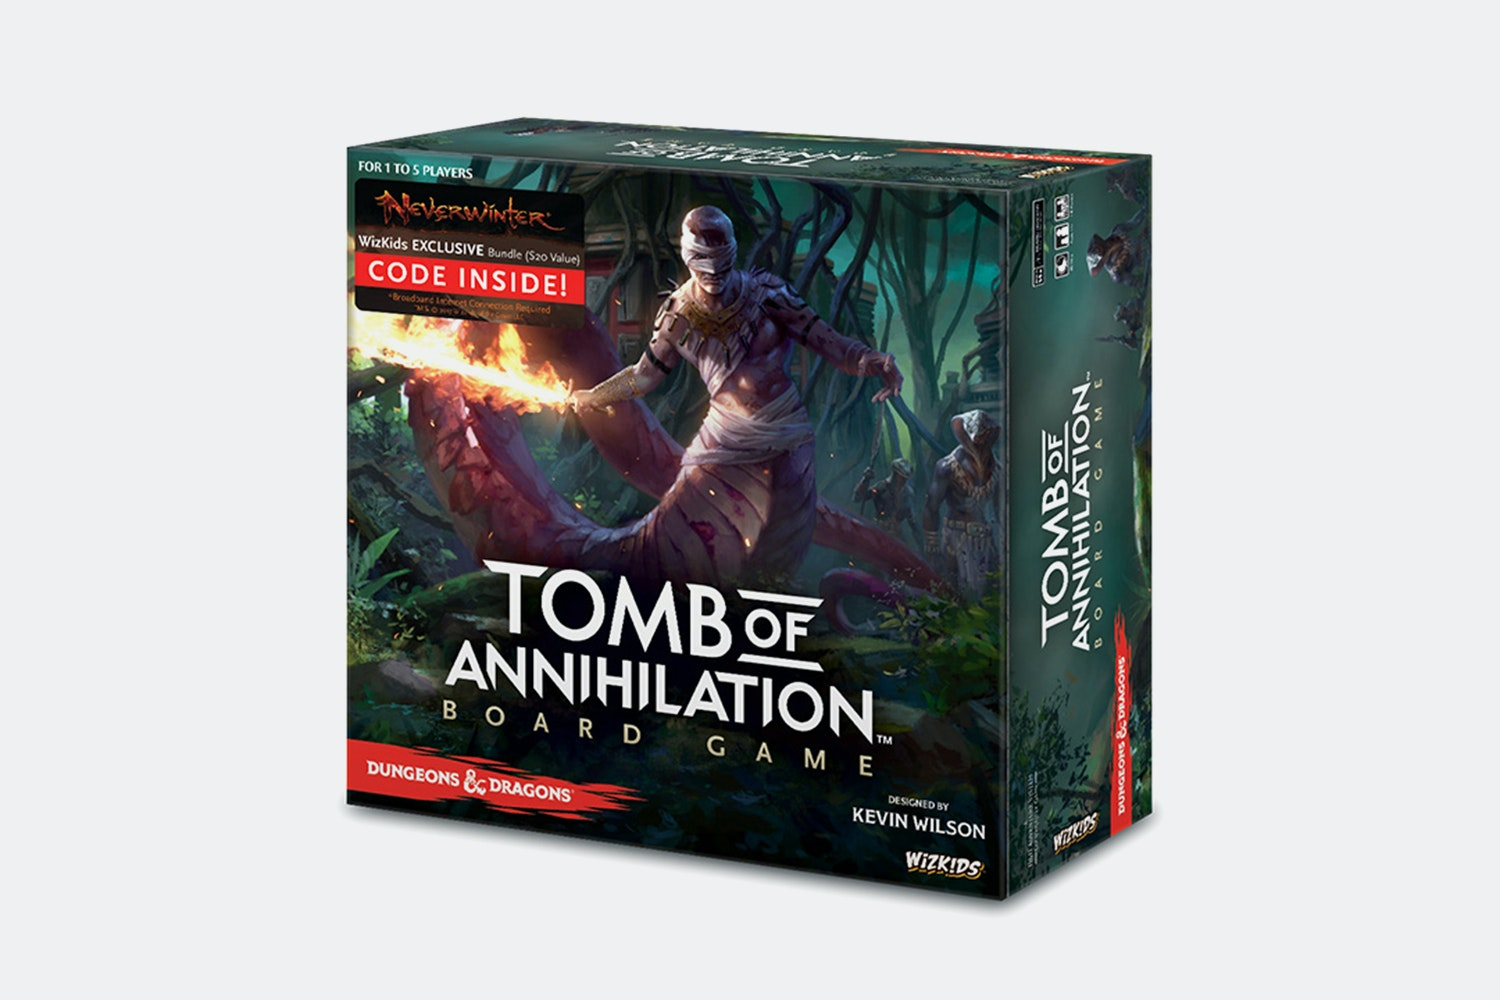 D&D: Tomb of Annihilation Board Game